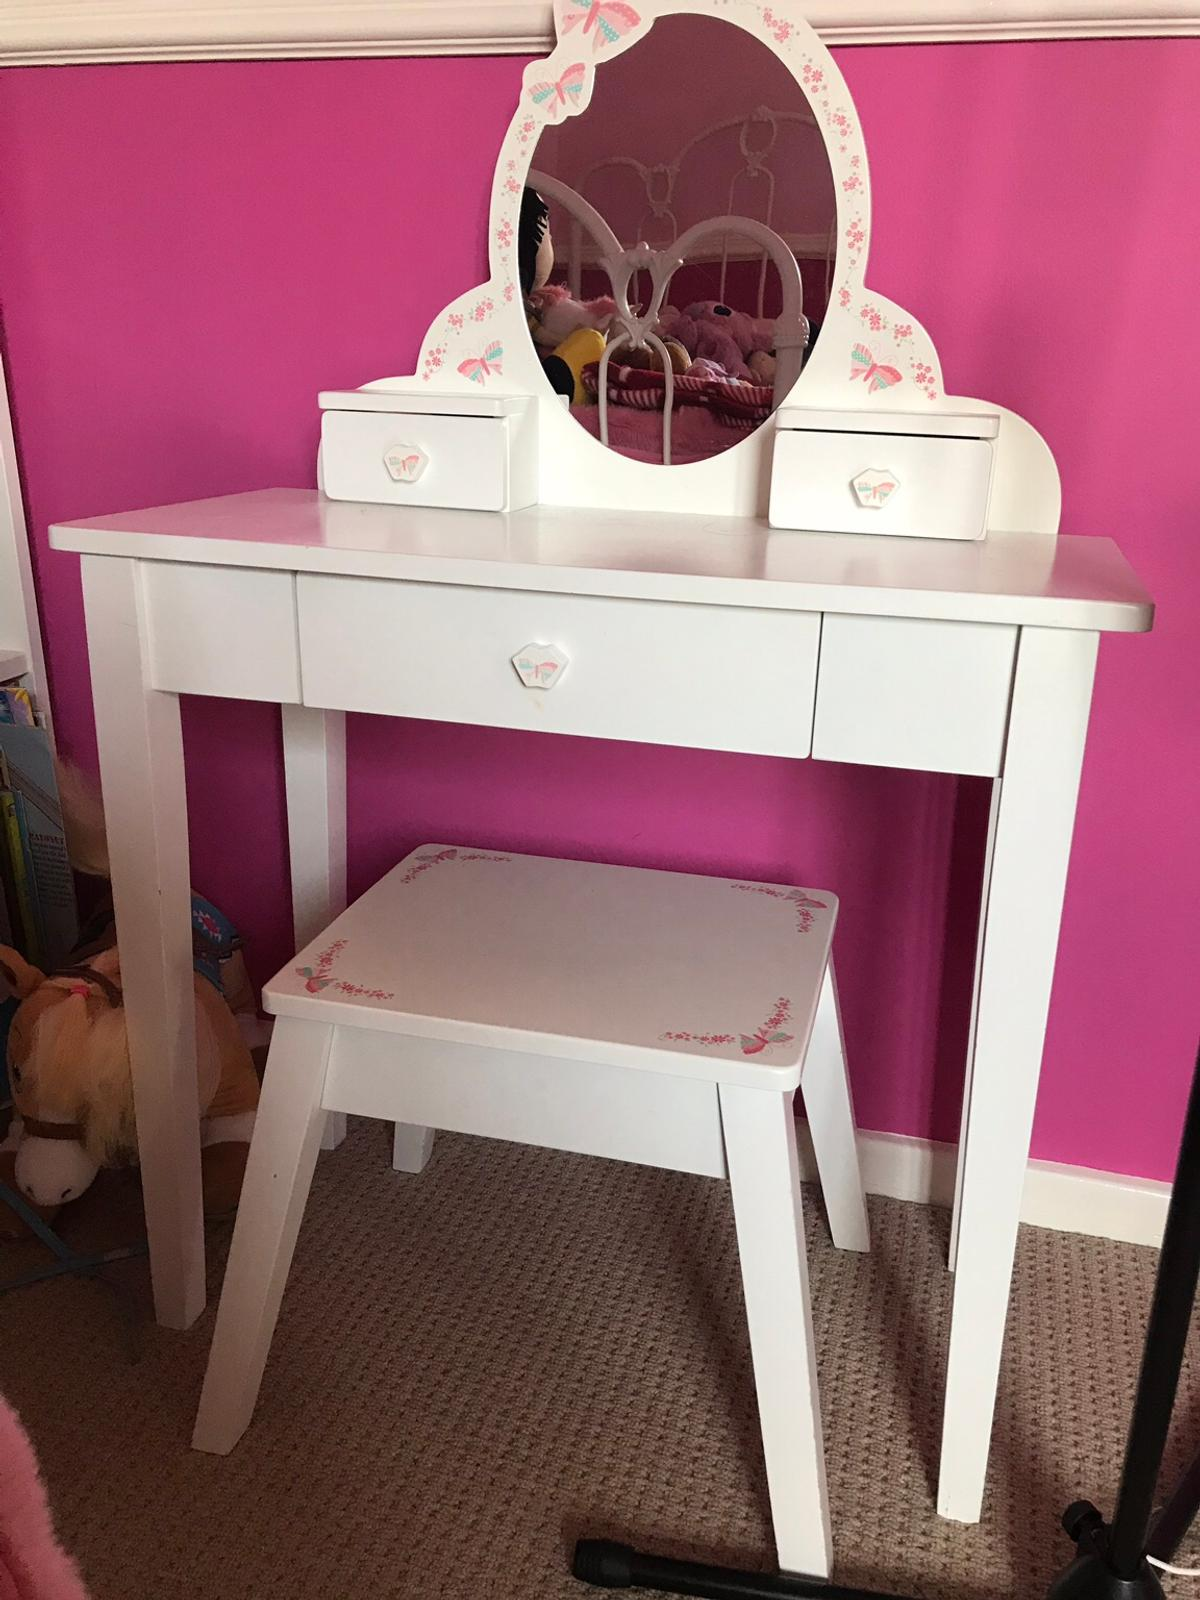 buy popular bfb01 5274e Childrens toy dressing table and stool